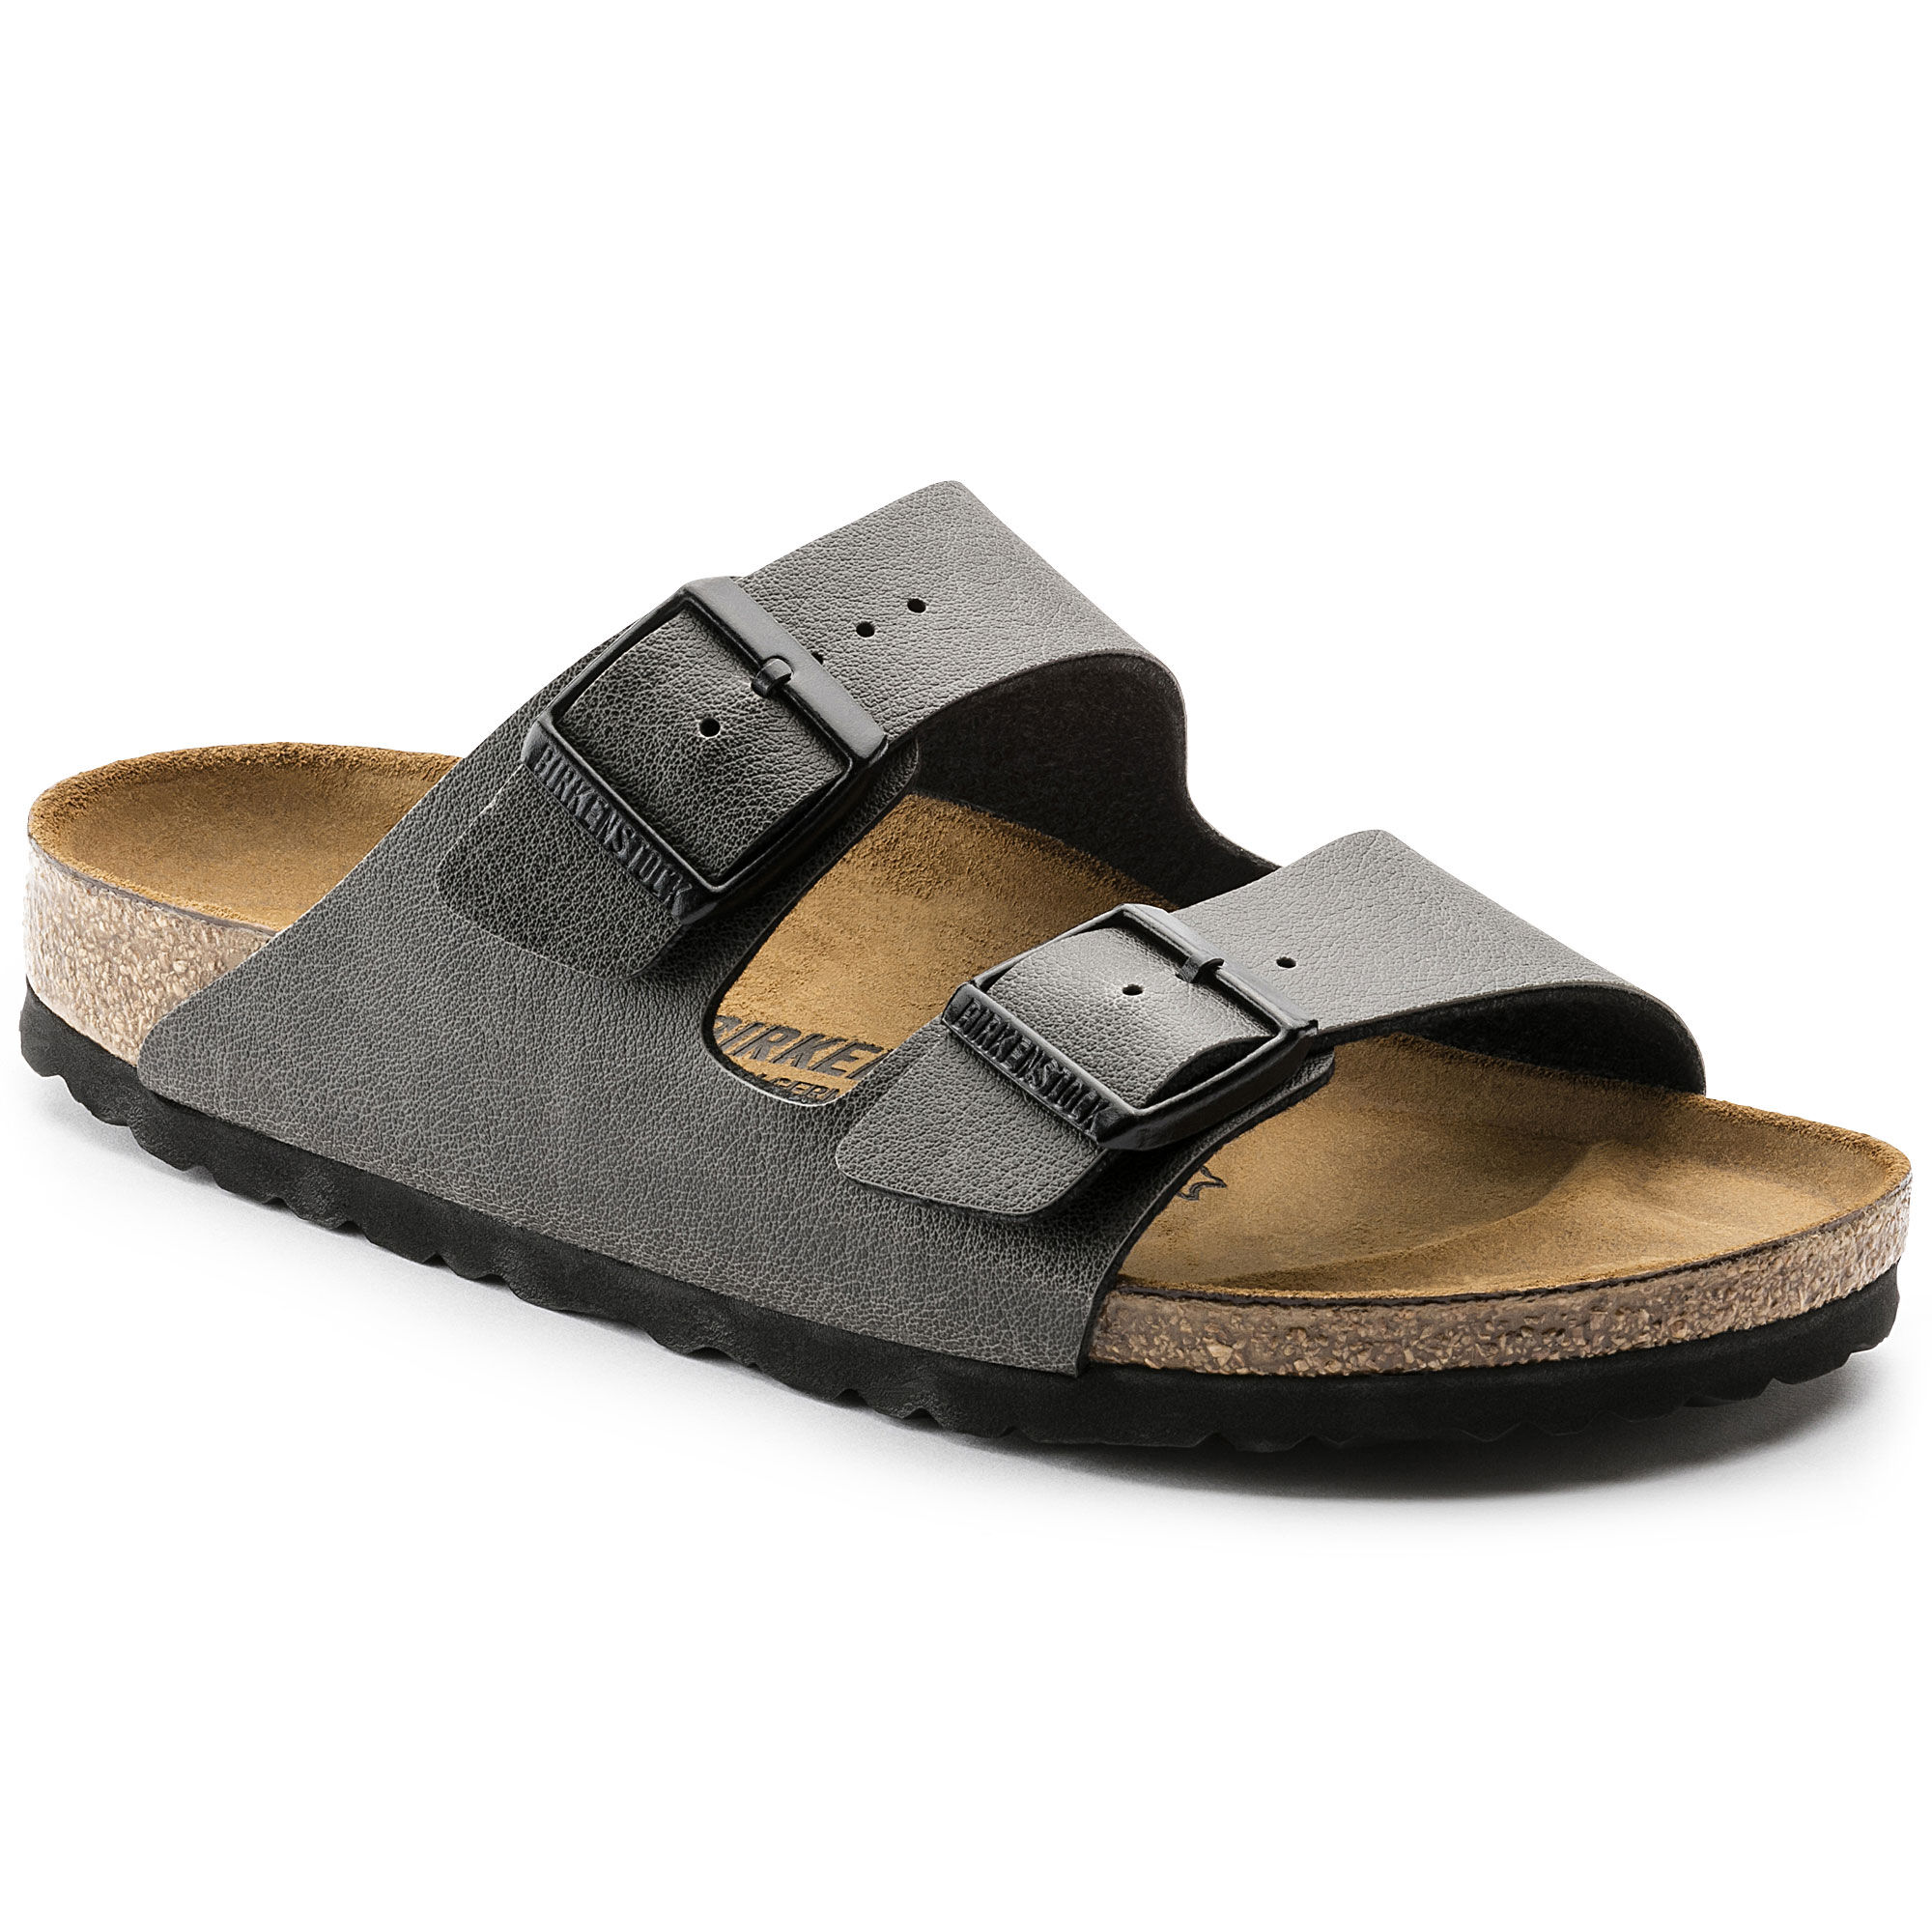 Birkenstock Arizona Anthracite Sandalen Damen 41 Anthracite